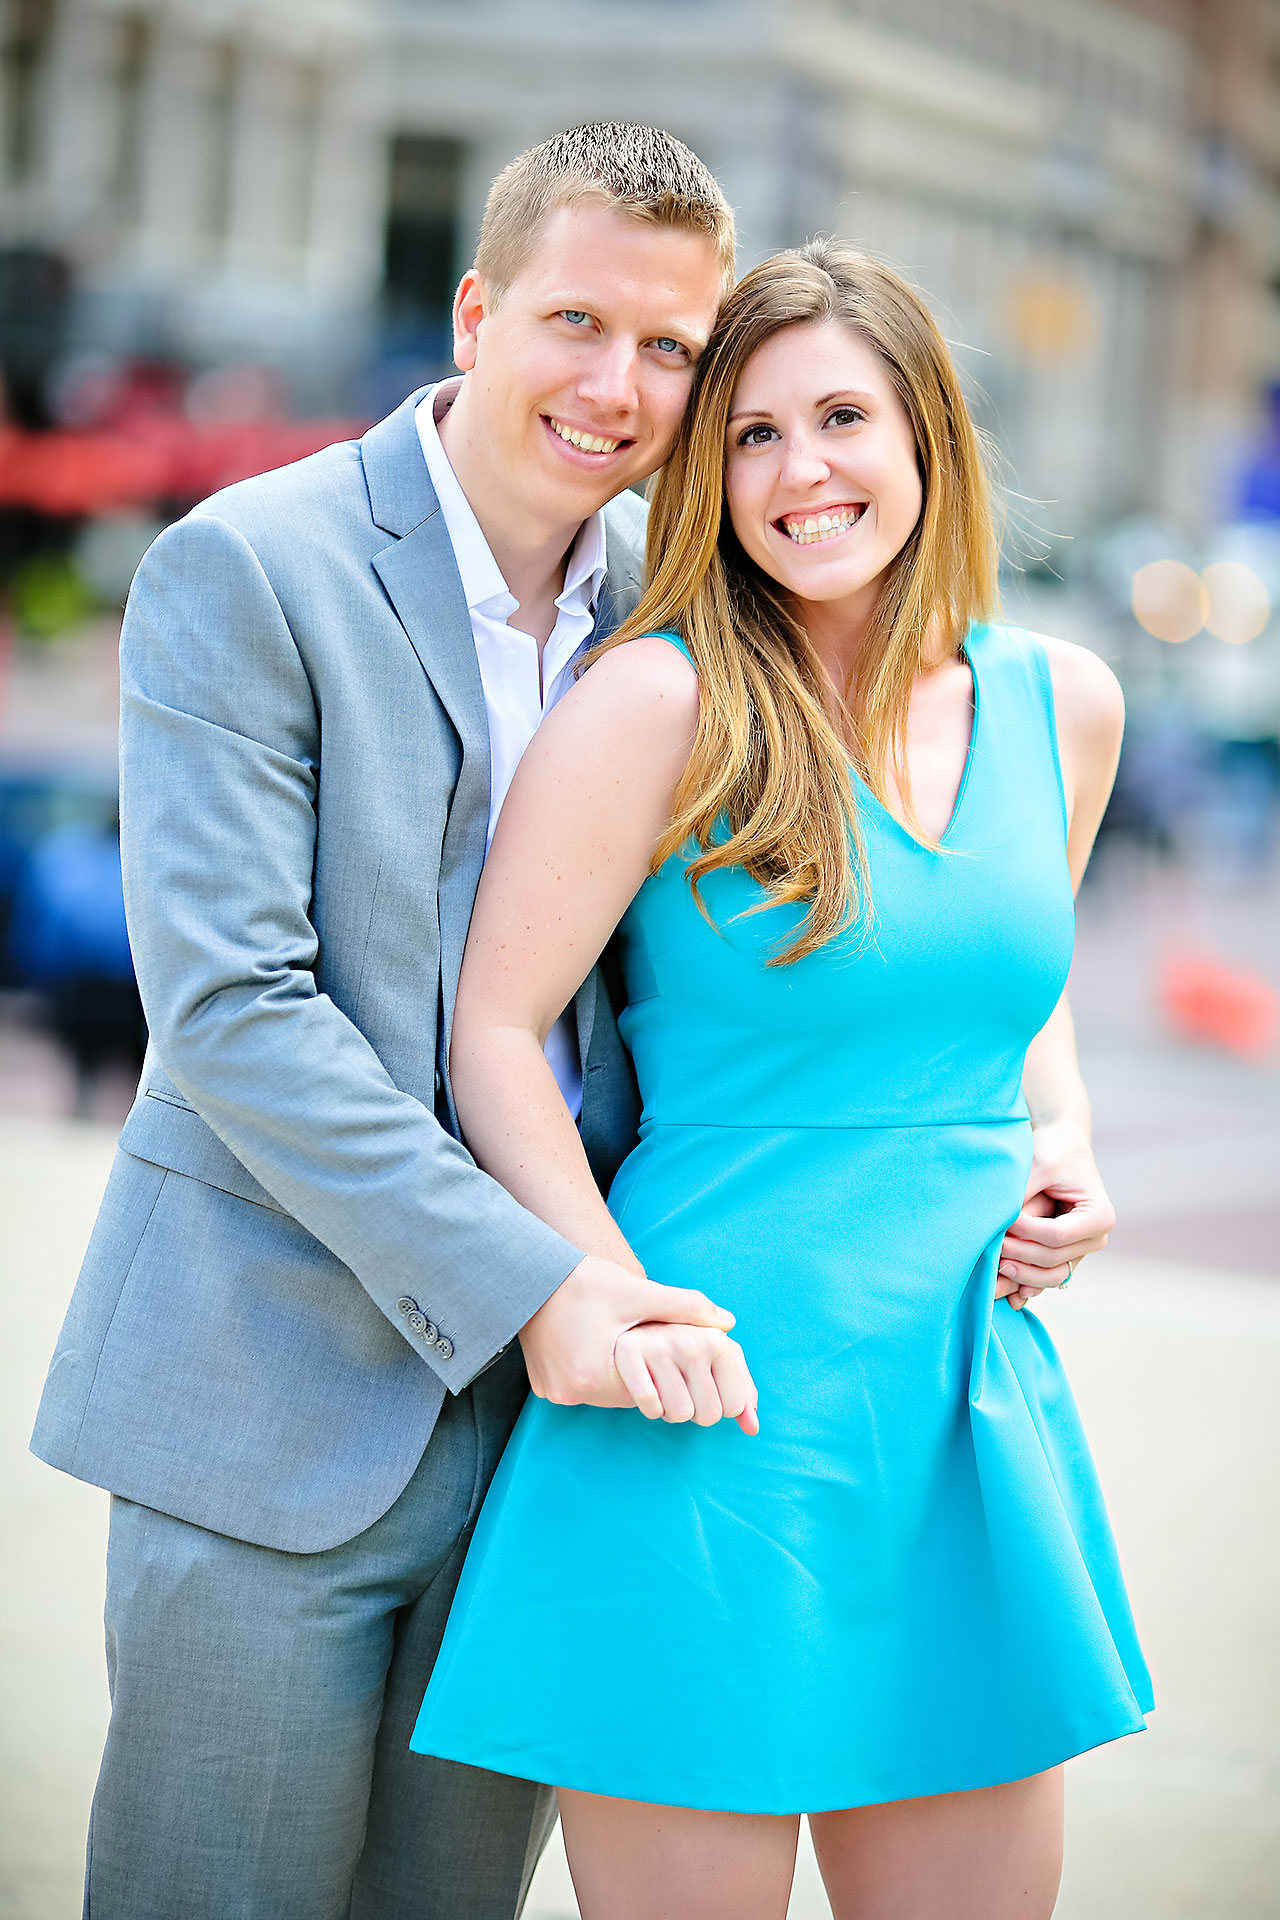 Chelsea Jeff Downtown Indy Engagement Session 069